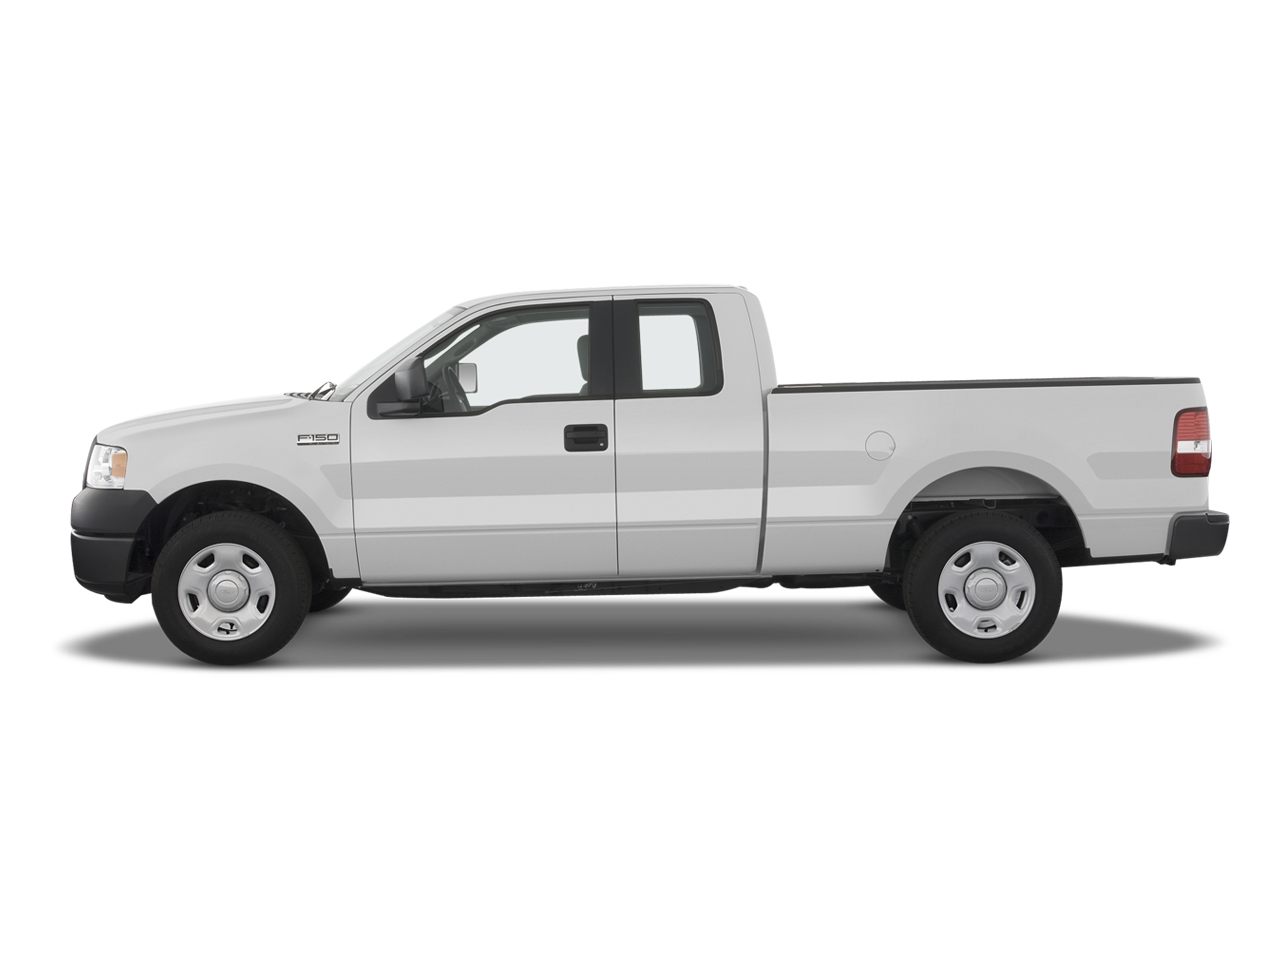 F150 Side View >> F150 Side View 2019 2020 Top Upcoming Cars